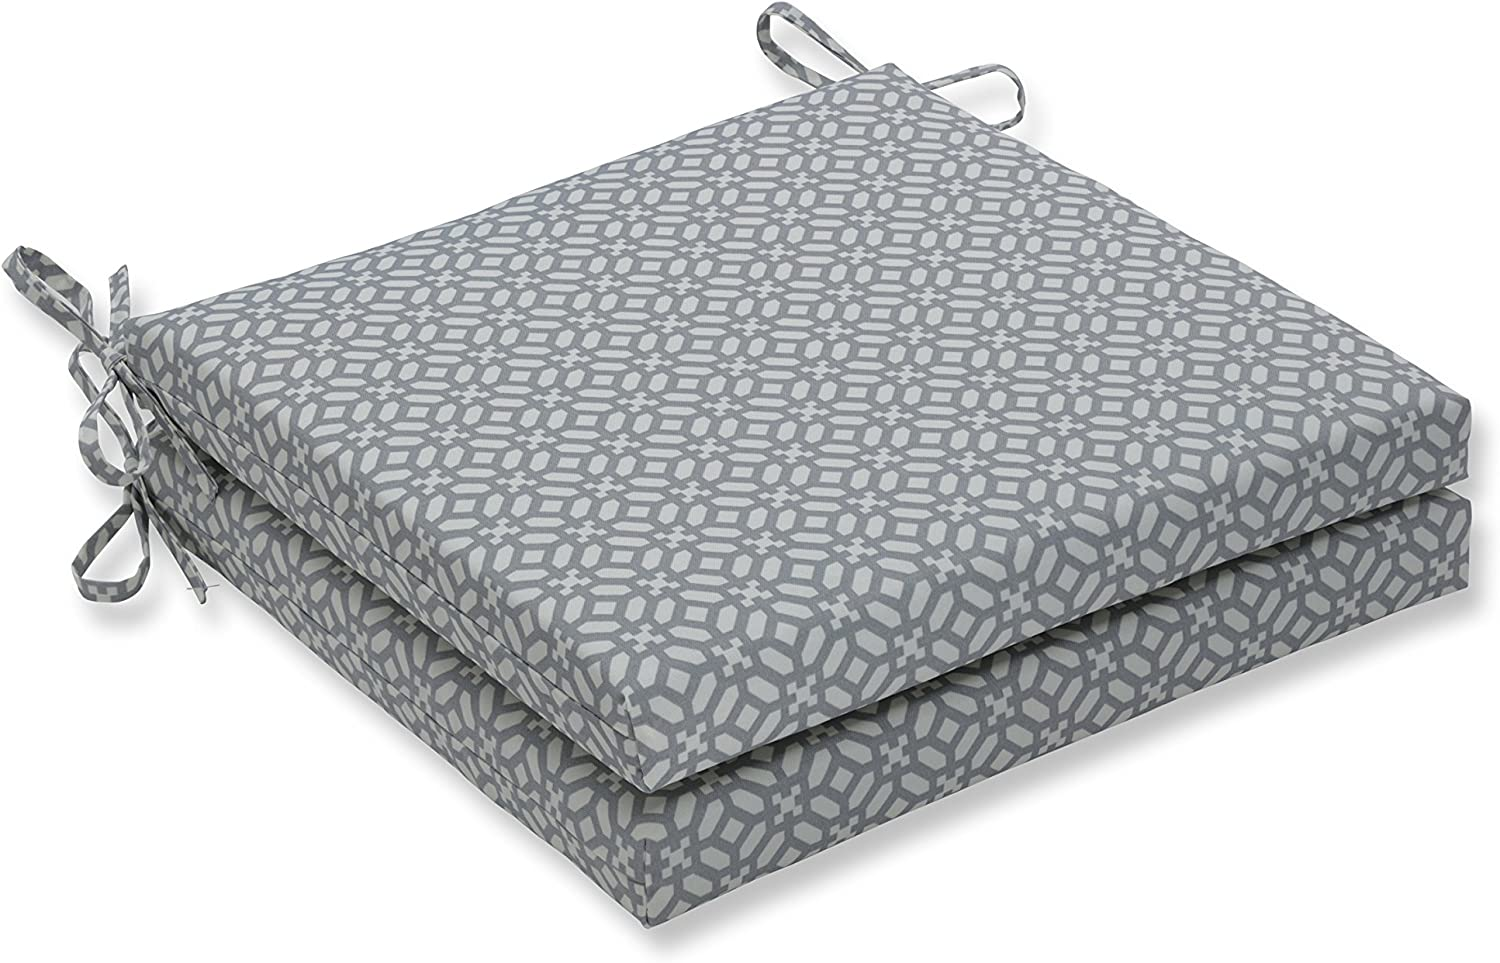 Pillow Perfect Outdoor Indoor In The Frame Pebble Squared Corners Seat Cushion 20x20x3 Set of 2